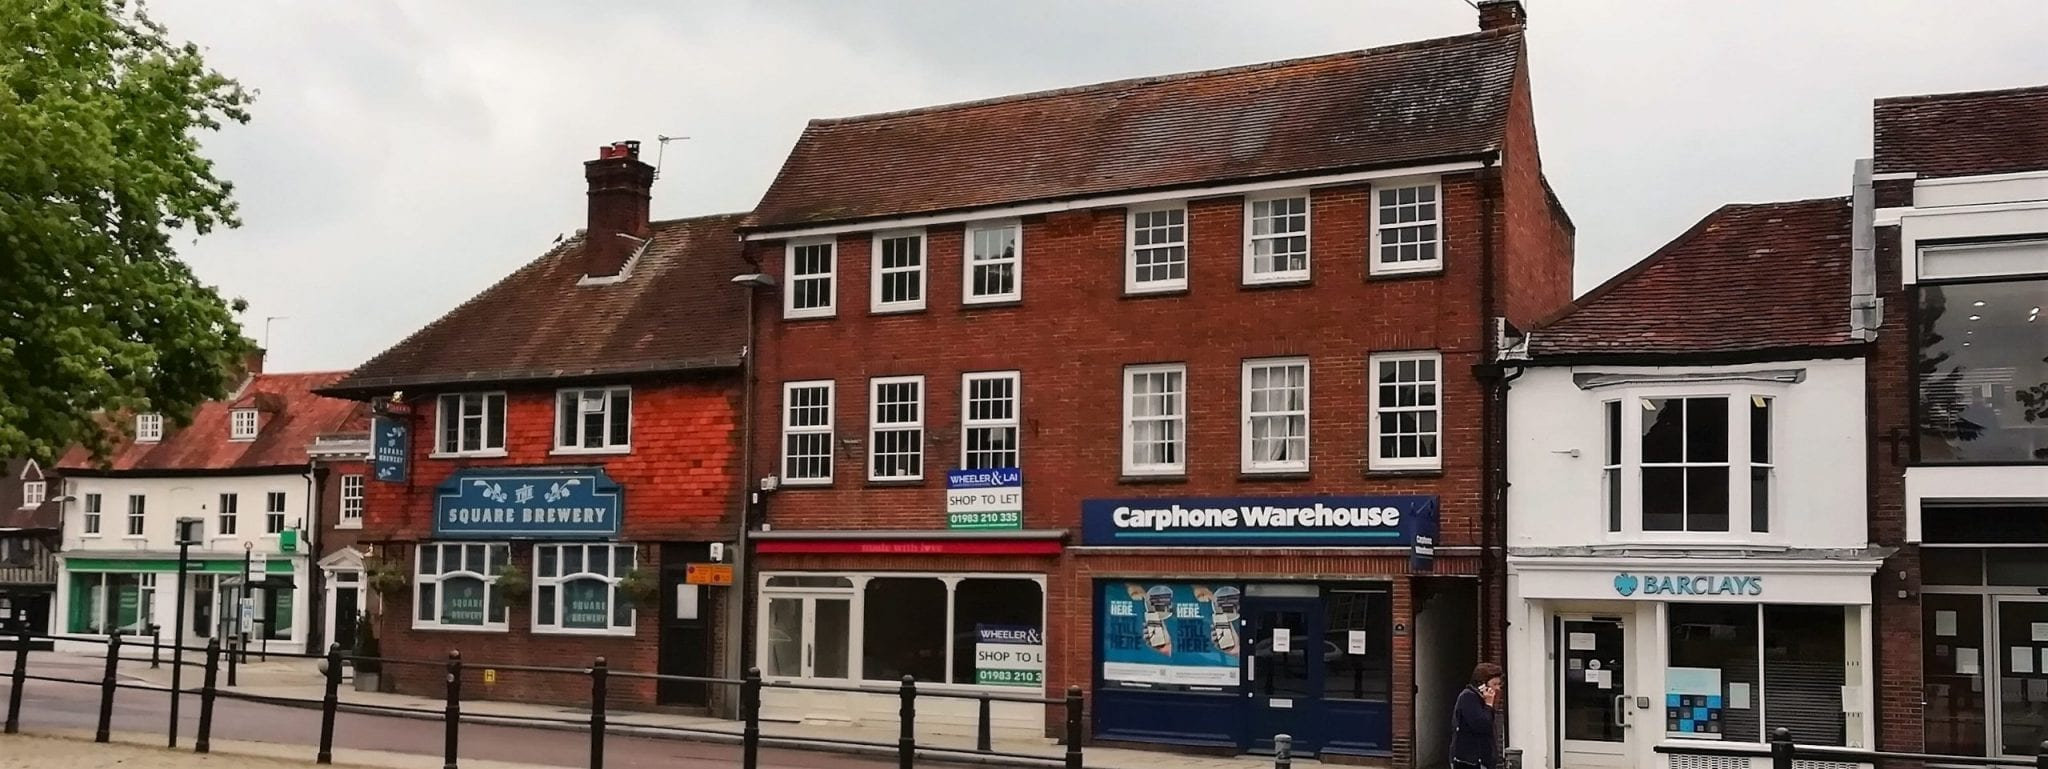 Commercial property - historic town centre retail parade with wheeler and lai chartered surveyors agency board to let